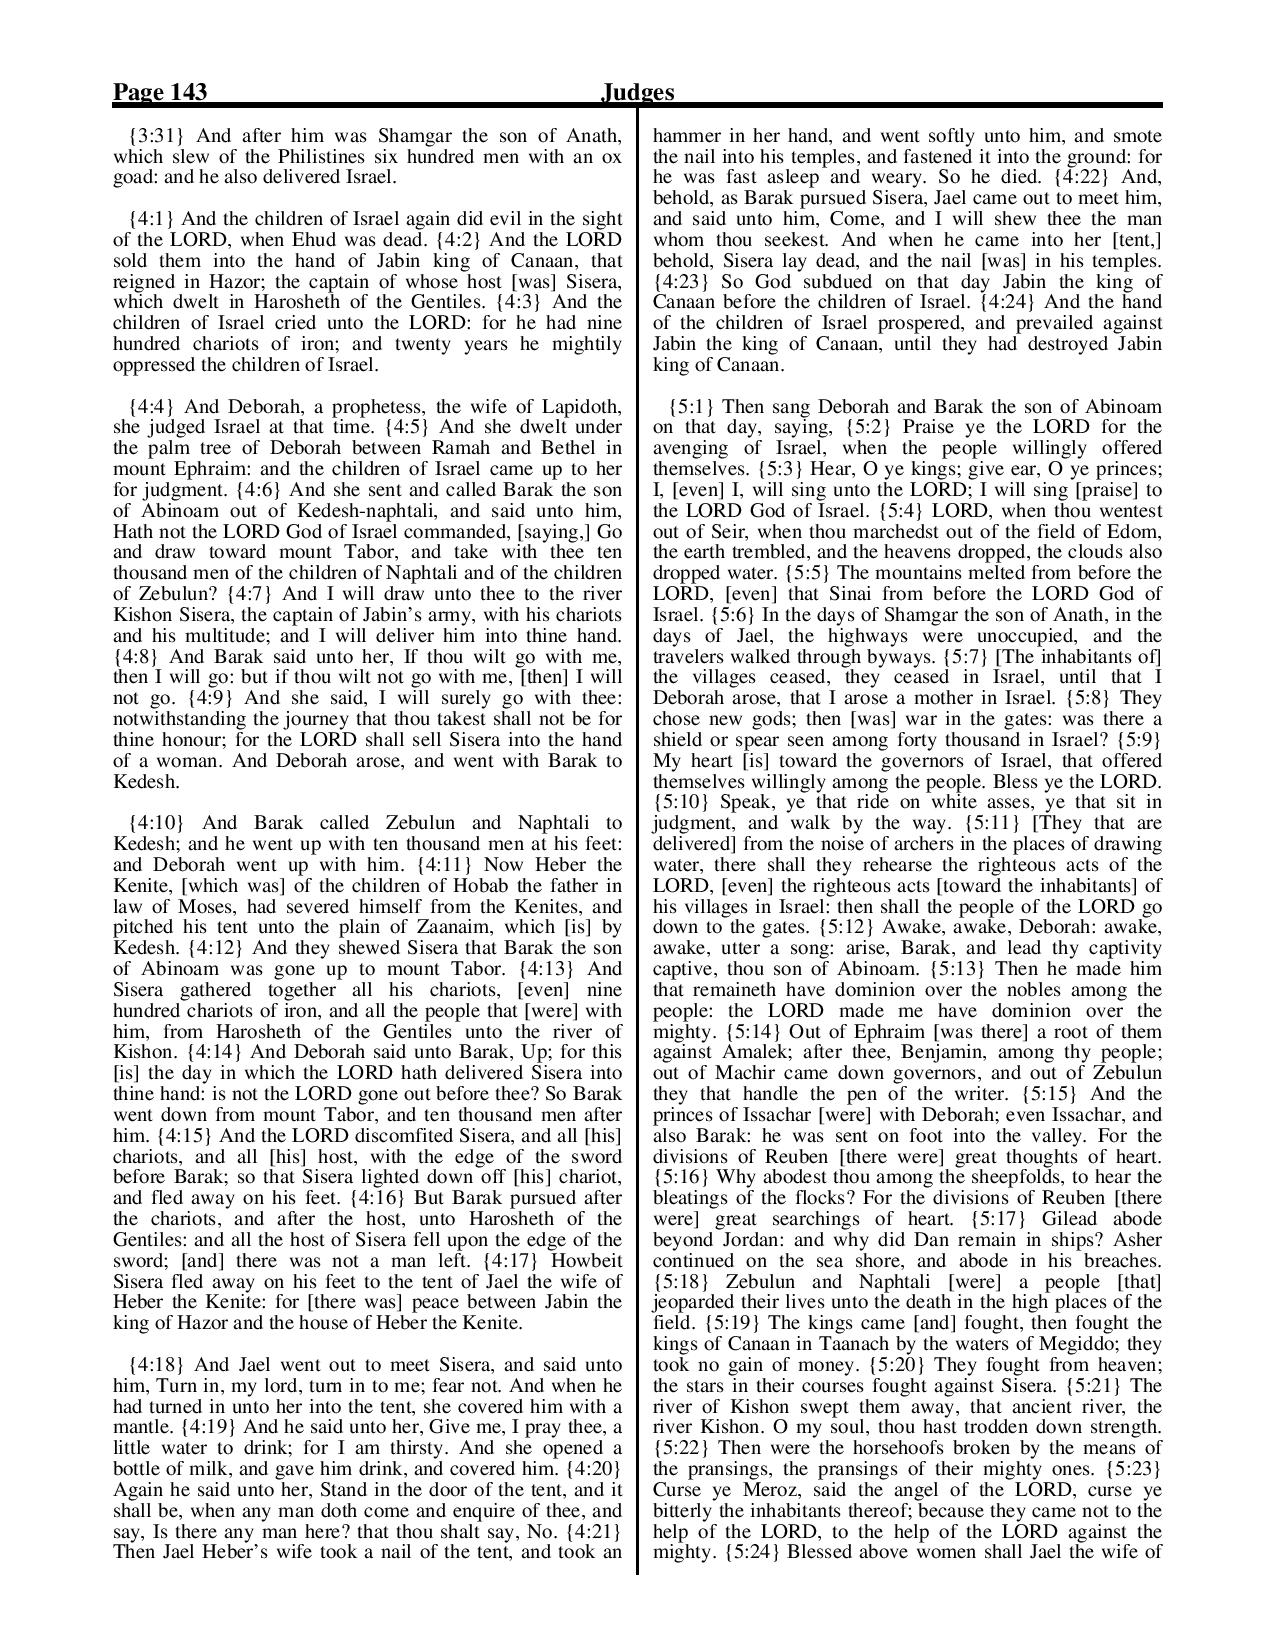 King-James-Bible-KJV-Bible-PDF-page-164